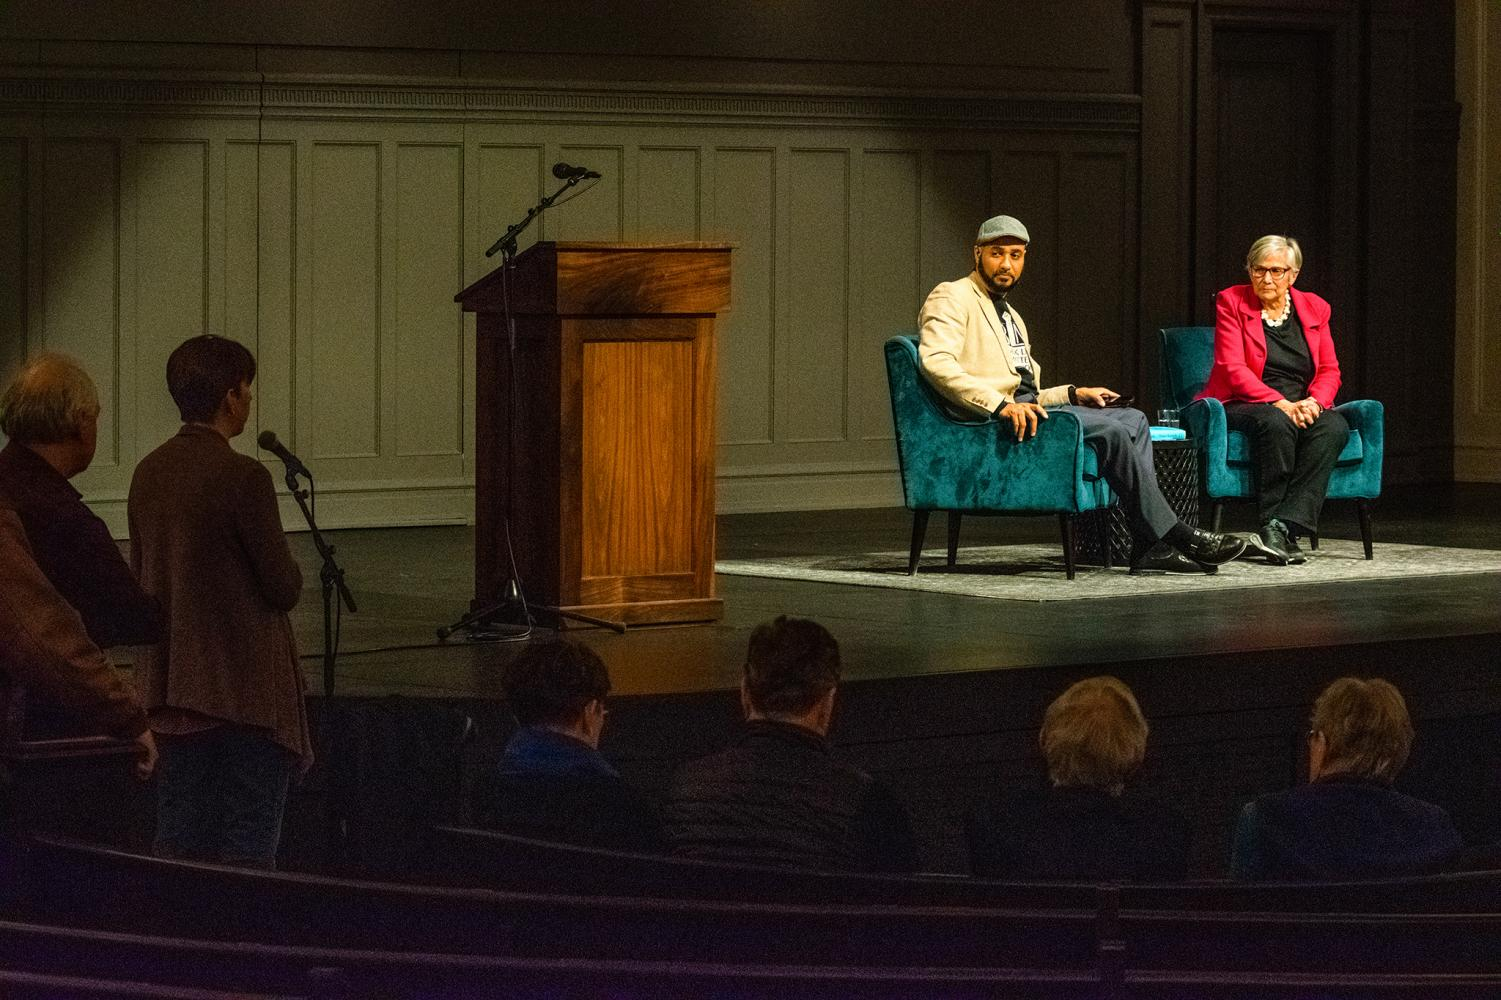 Jesse Hagopian and Diane Ravitch responding to questions from the audience.